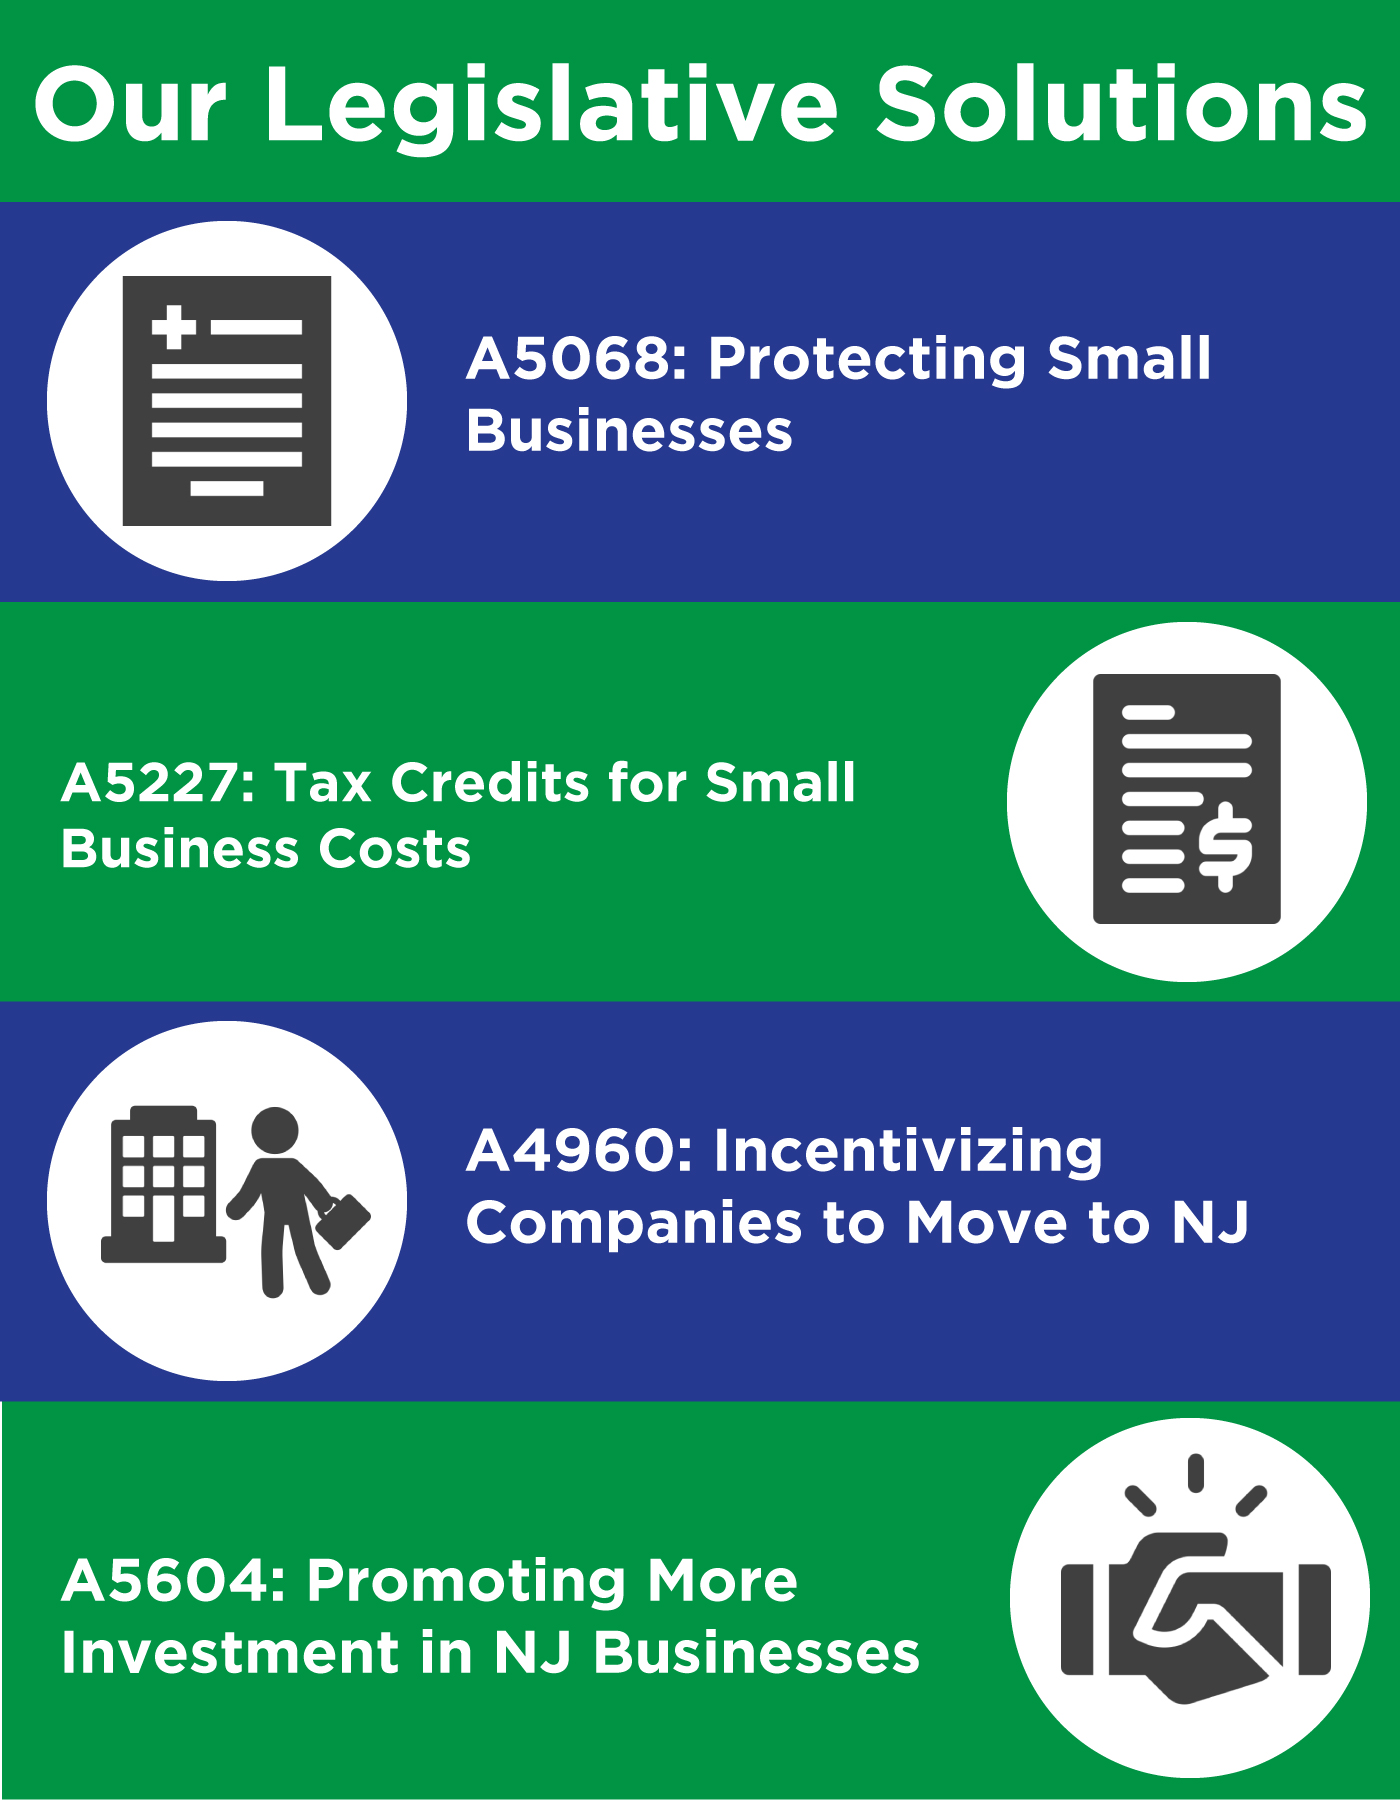 Legislative solutions from Roy Freiman for Assembly in New Jersey